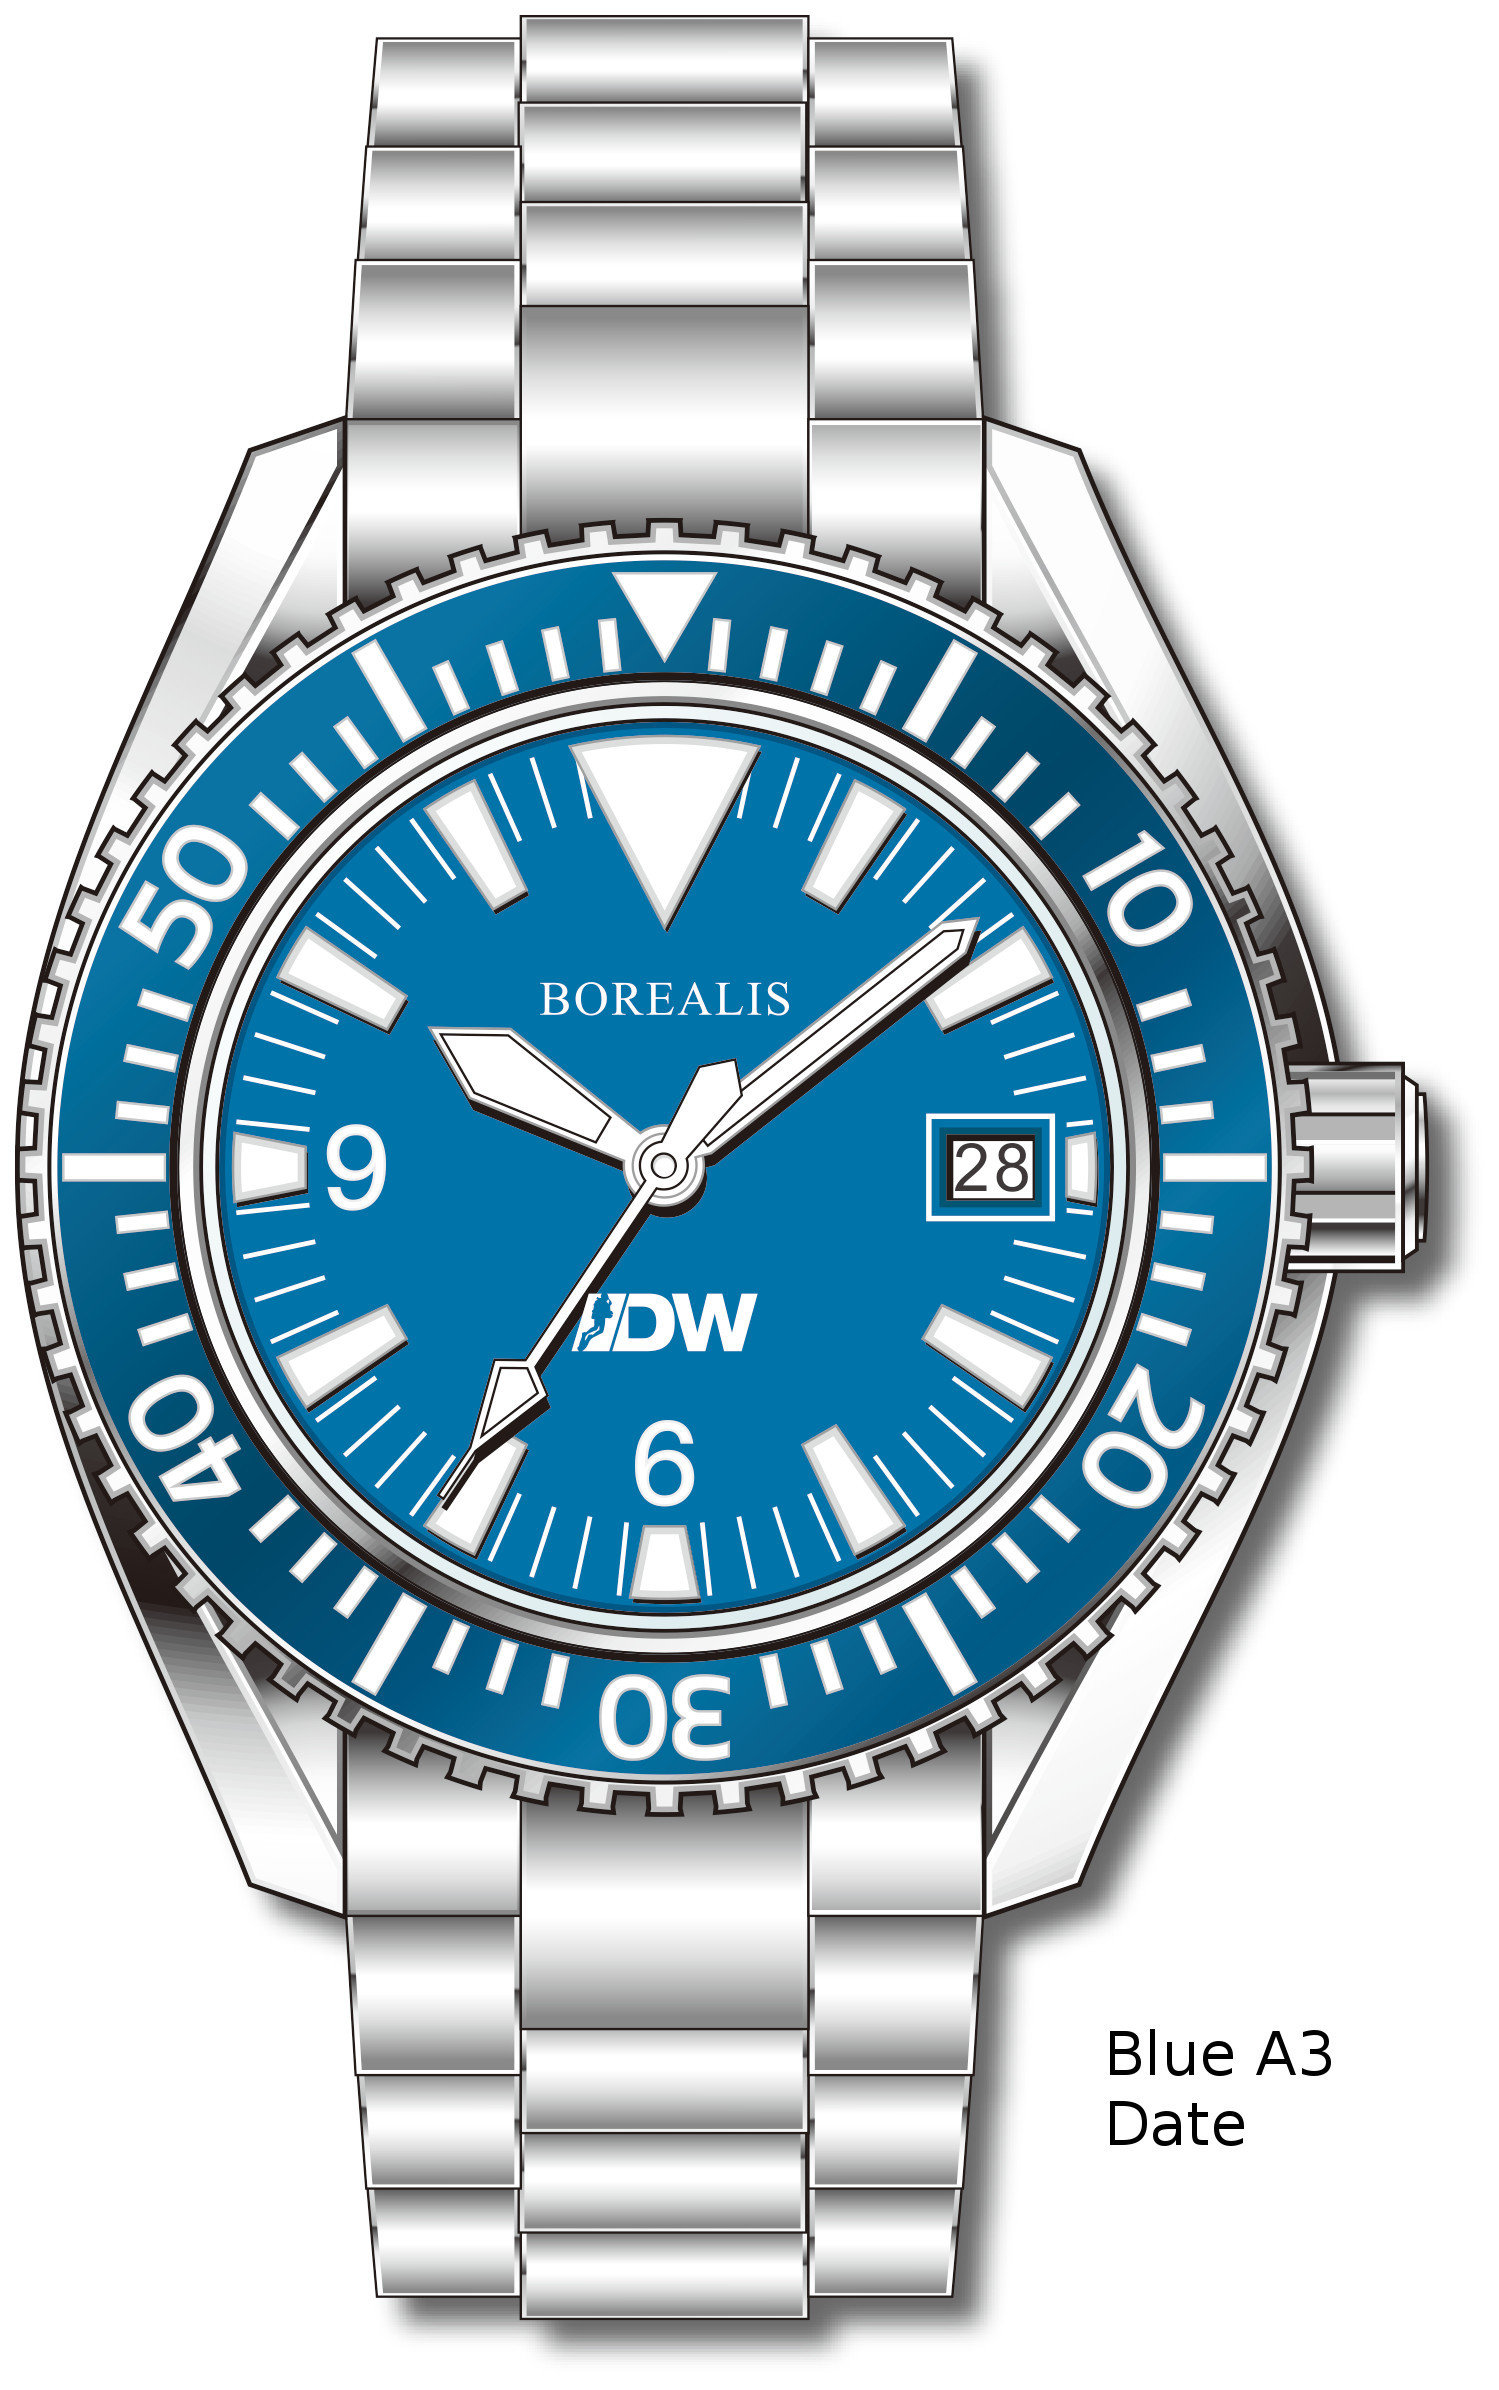 Pre-Order Borealis Estoril 300 for Diver's Watches Facebook Group Blue Dial Big Triangle Date Blue A3 EDWFBGBLUEA3DT